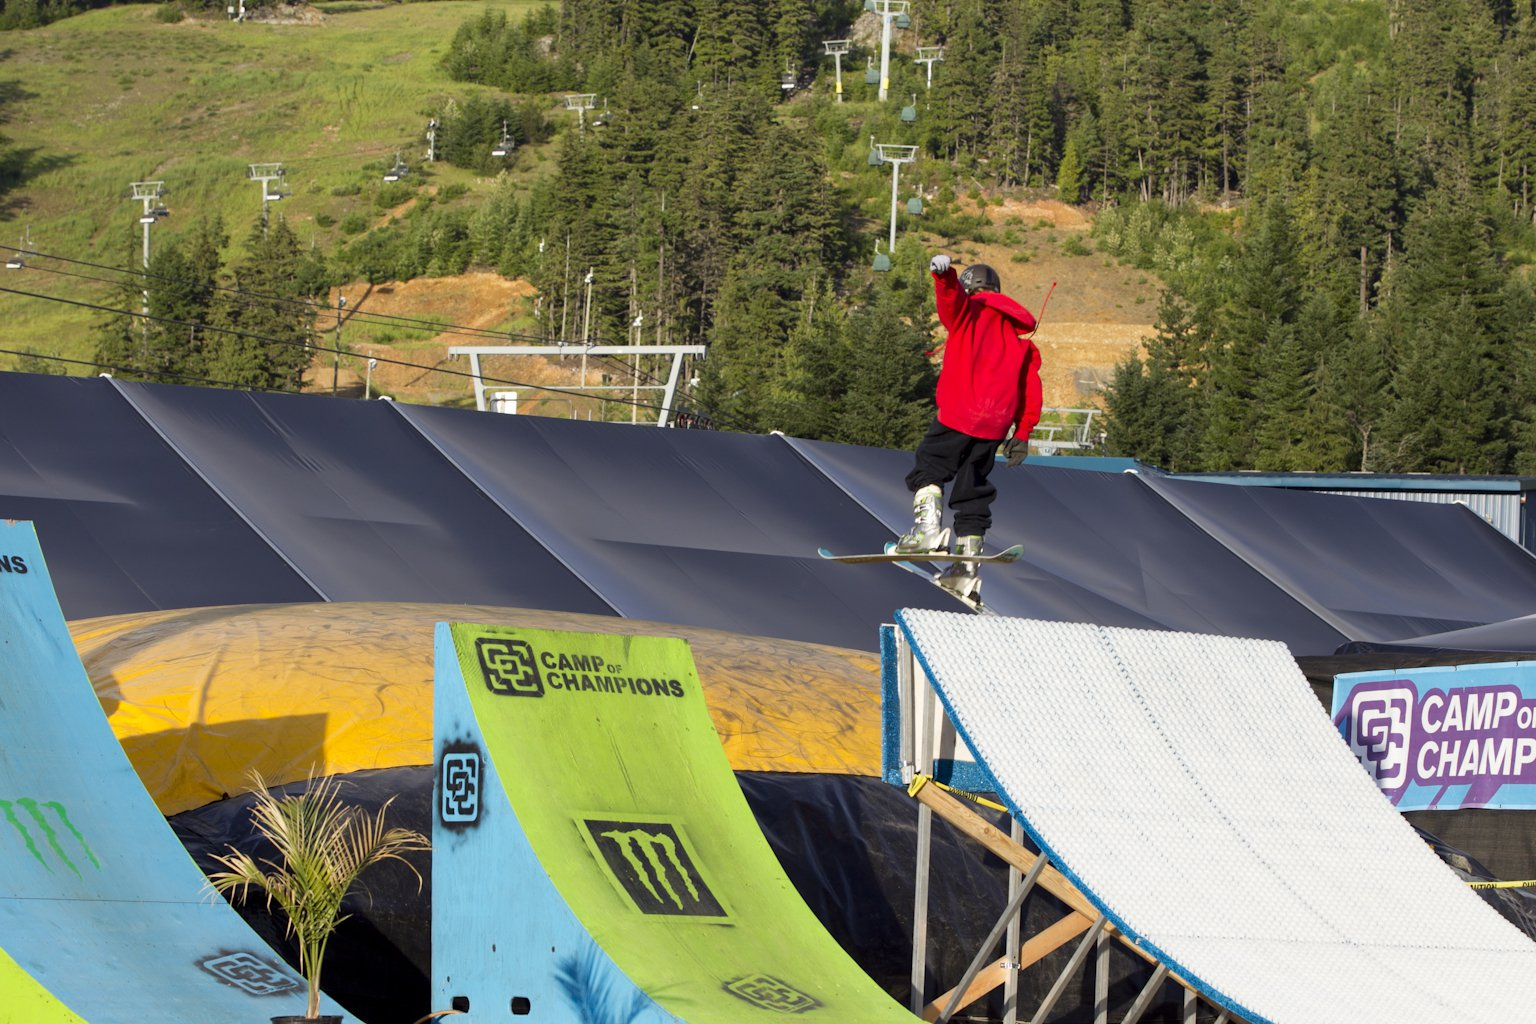 The Camp of Champions - The Launcher - 2 of 15